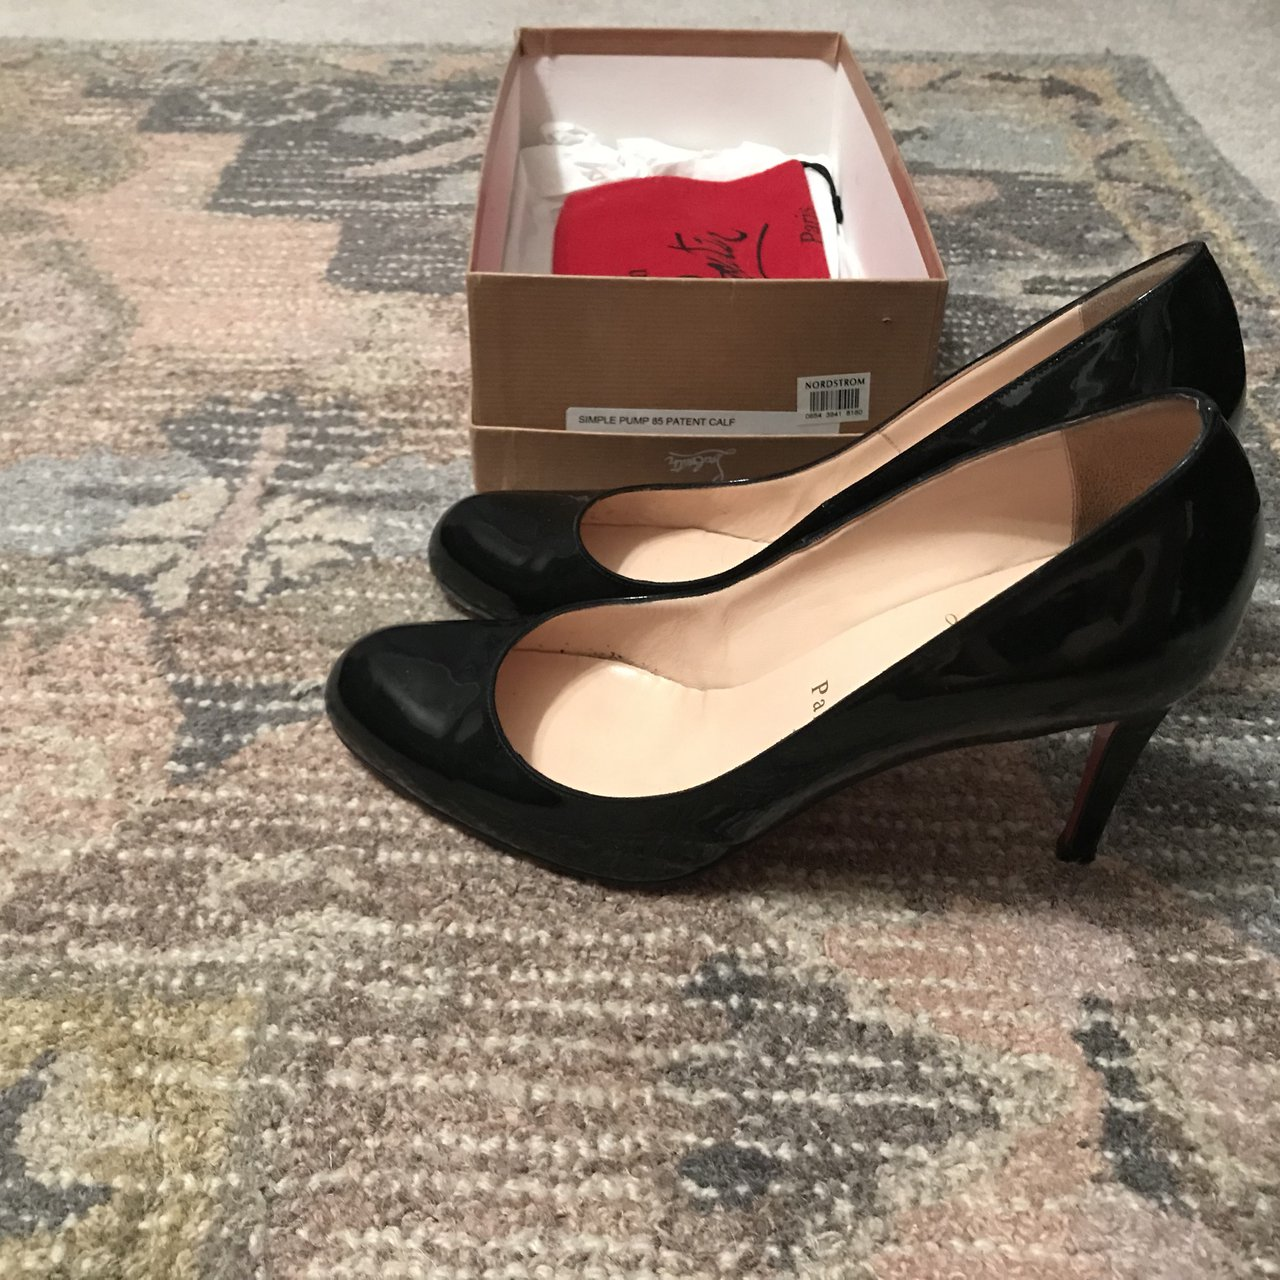 02b6d8afb24d Christian Louboutin size 39(8.5) heels  350. I have only 3 I - Depop